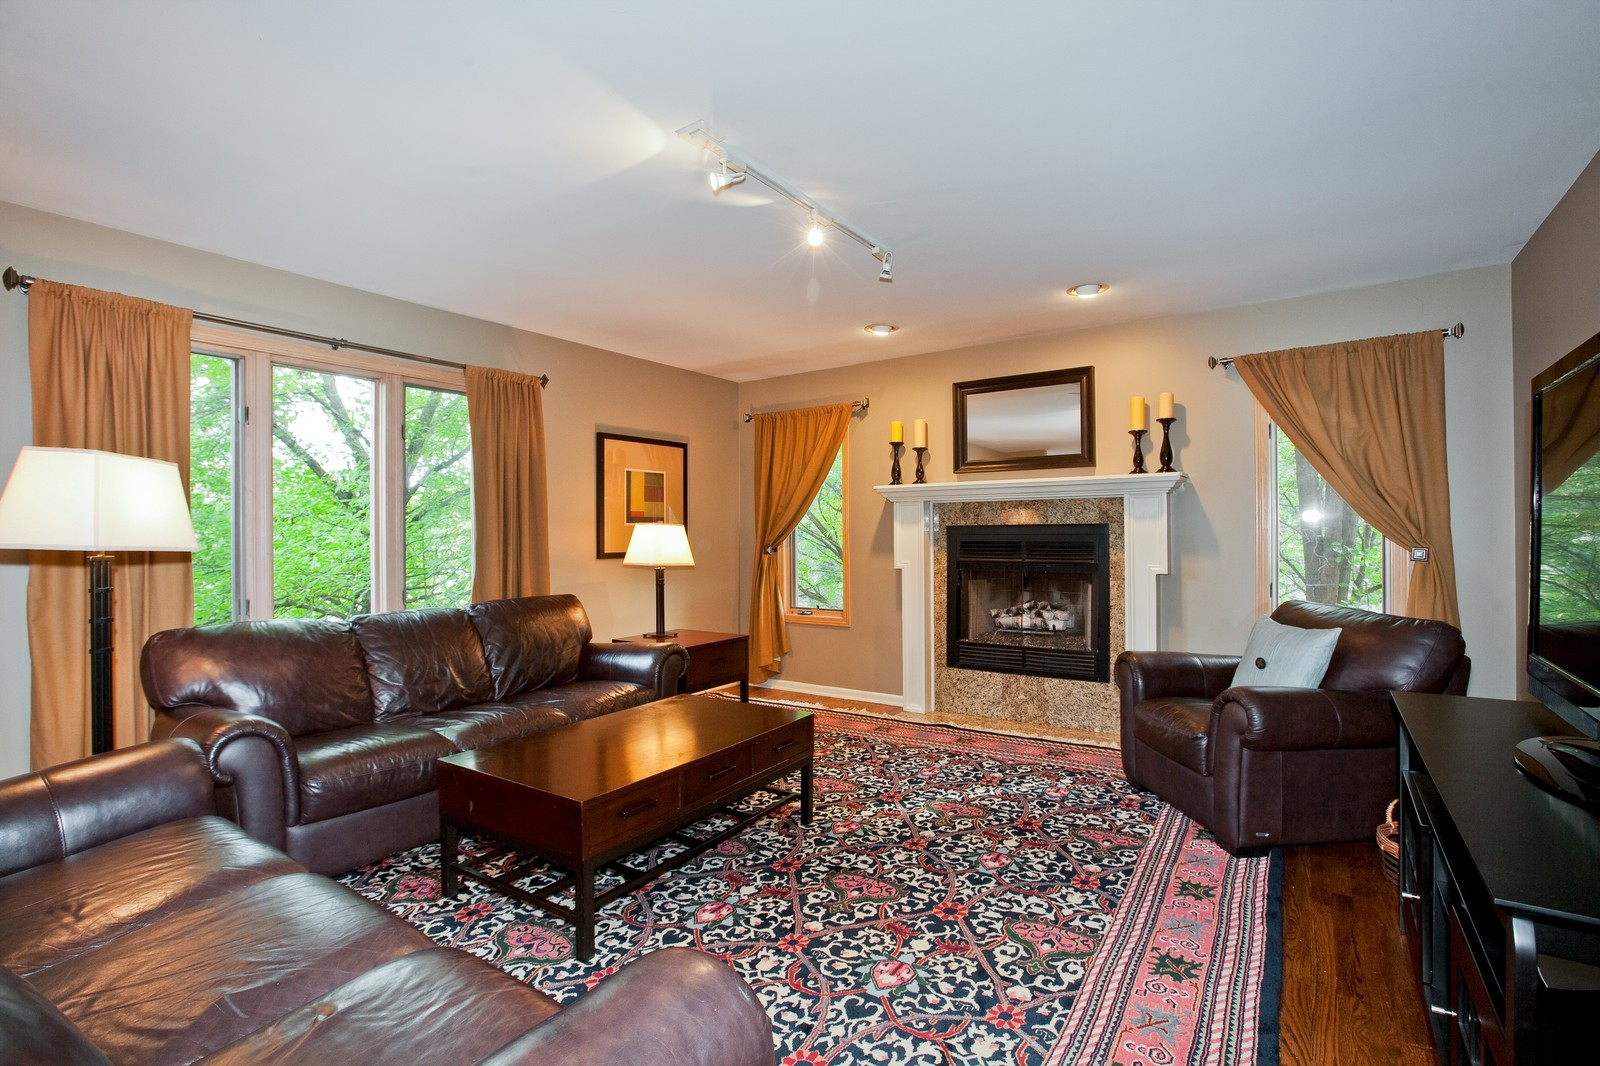 Real Estate Photography - 1031 W. 119th St, Lemont, IL, 60439 - Family Room